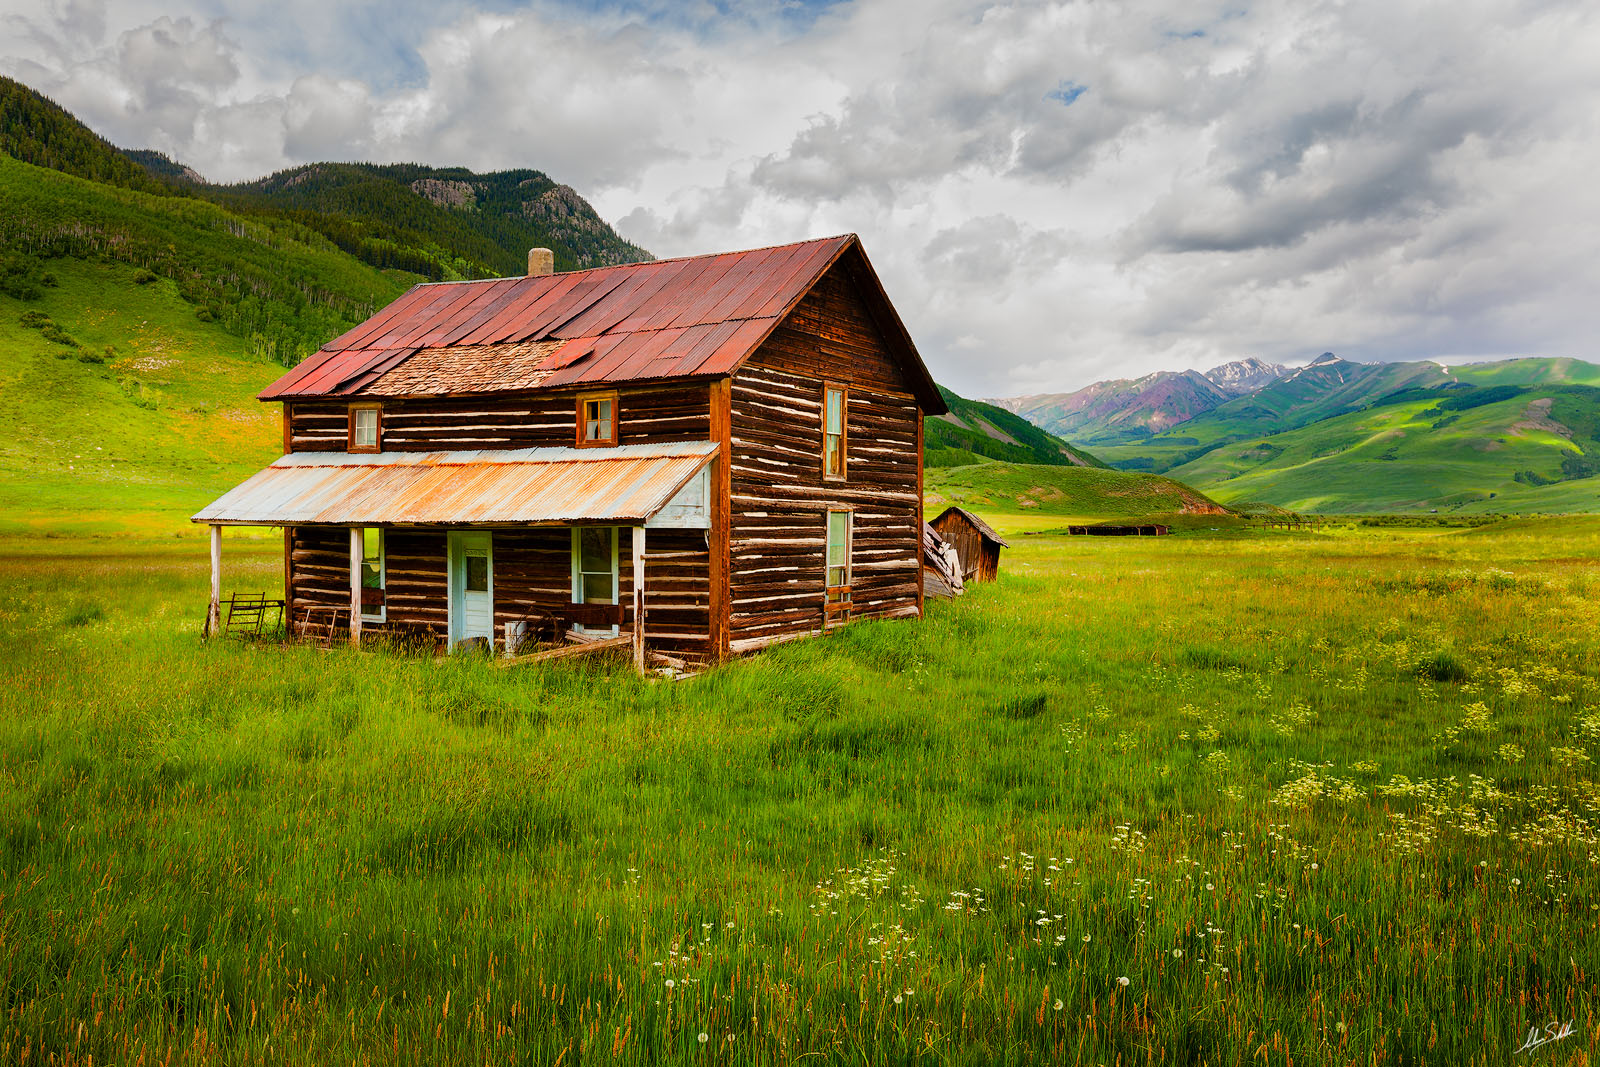 CO, Cabin, Colorado, Crested Butte, Homestead, Log cabin, Old Home, Ranch, Wildflowers, photo